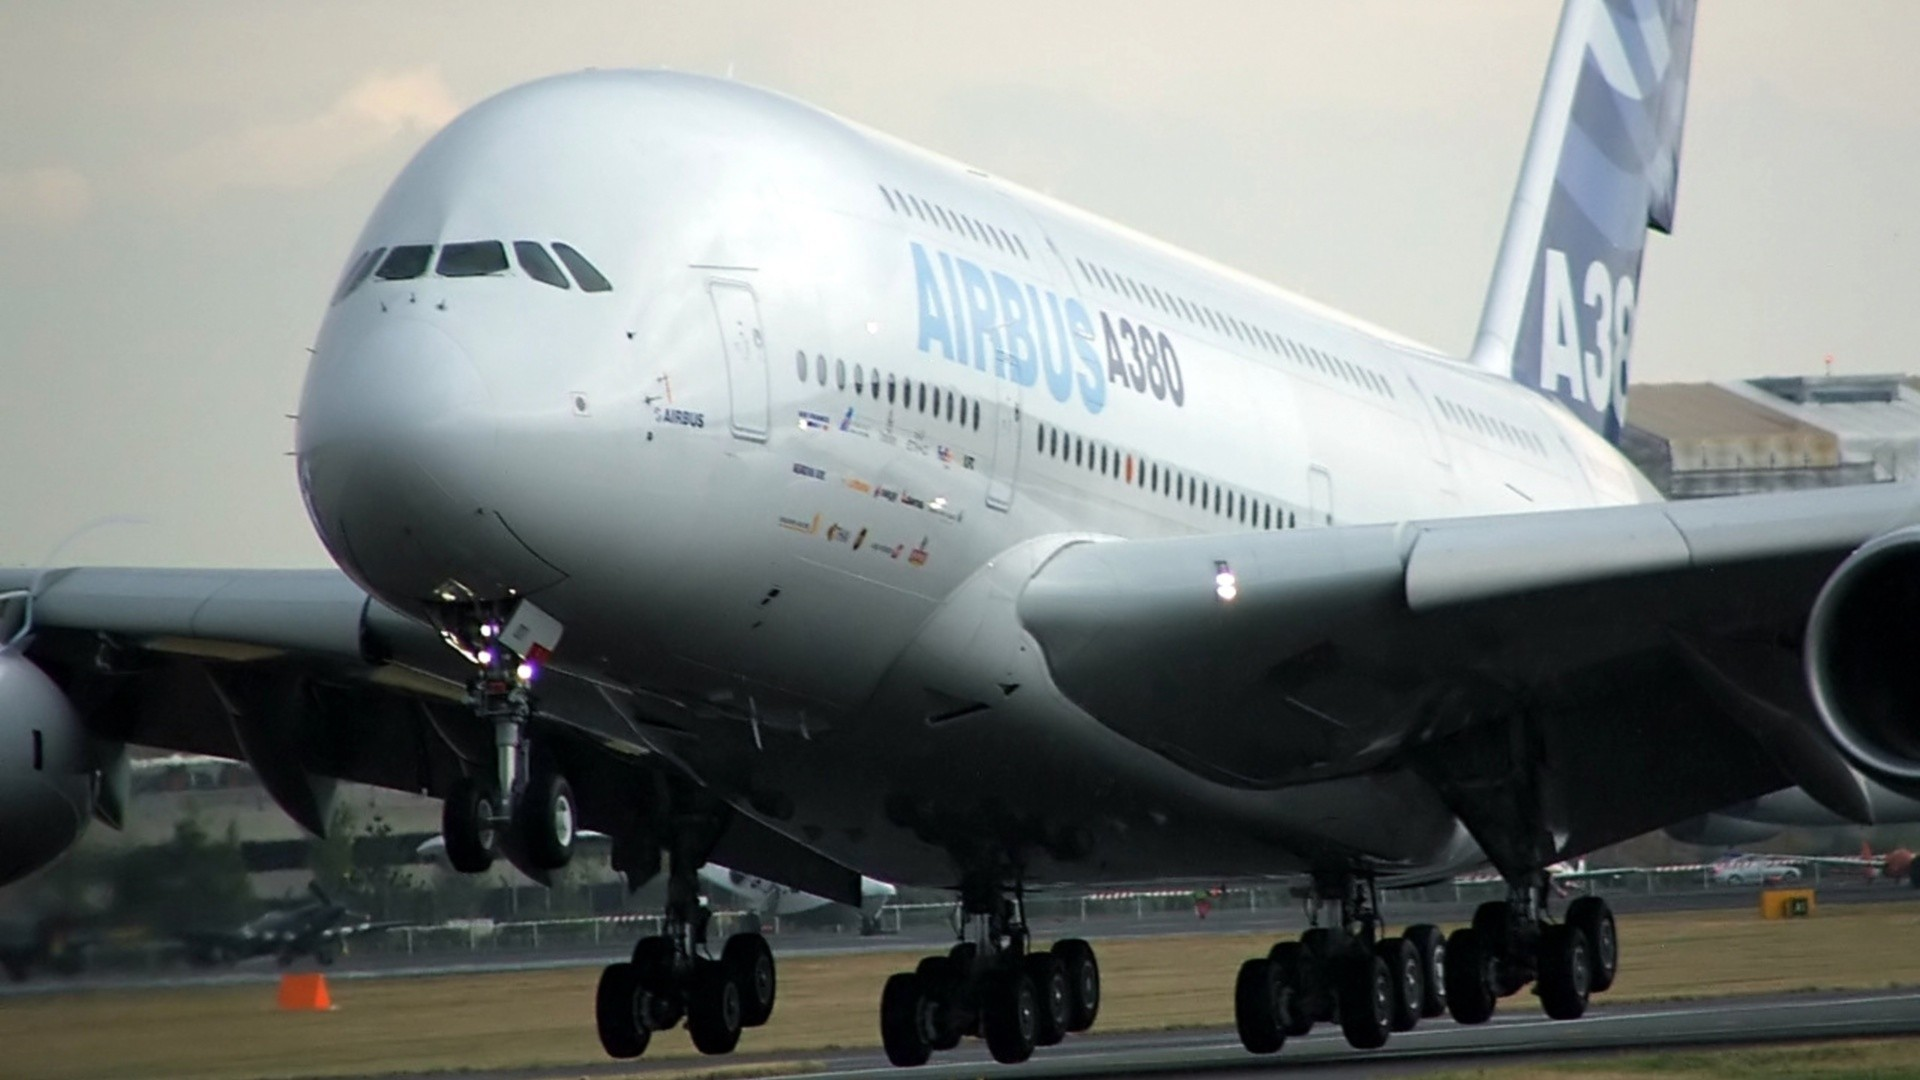 Plane A380 Airbus on Aircraft Airbus A380 800 Hd Wallpaper   Aircrafts   Planes   779455